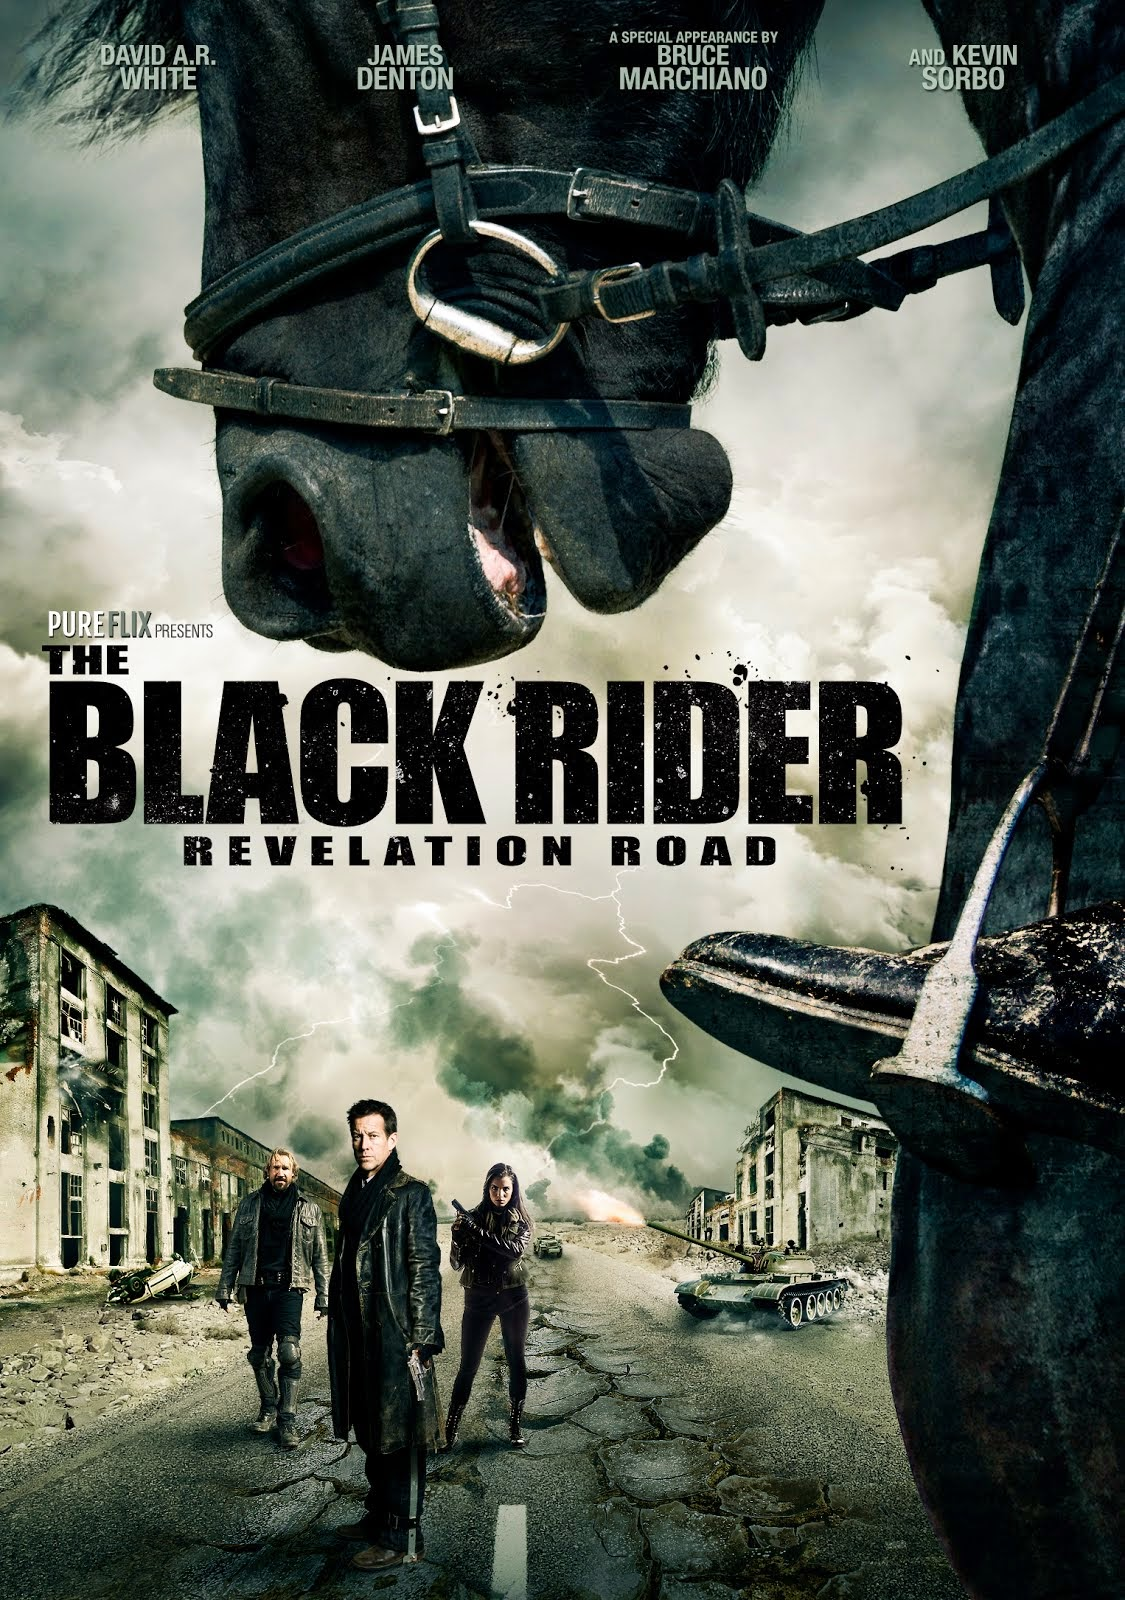 The Black Rider: Revelation Road In Stores Today!